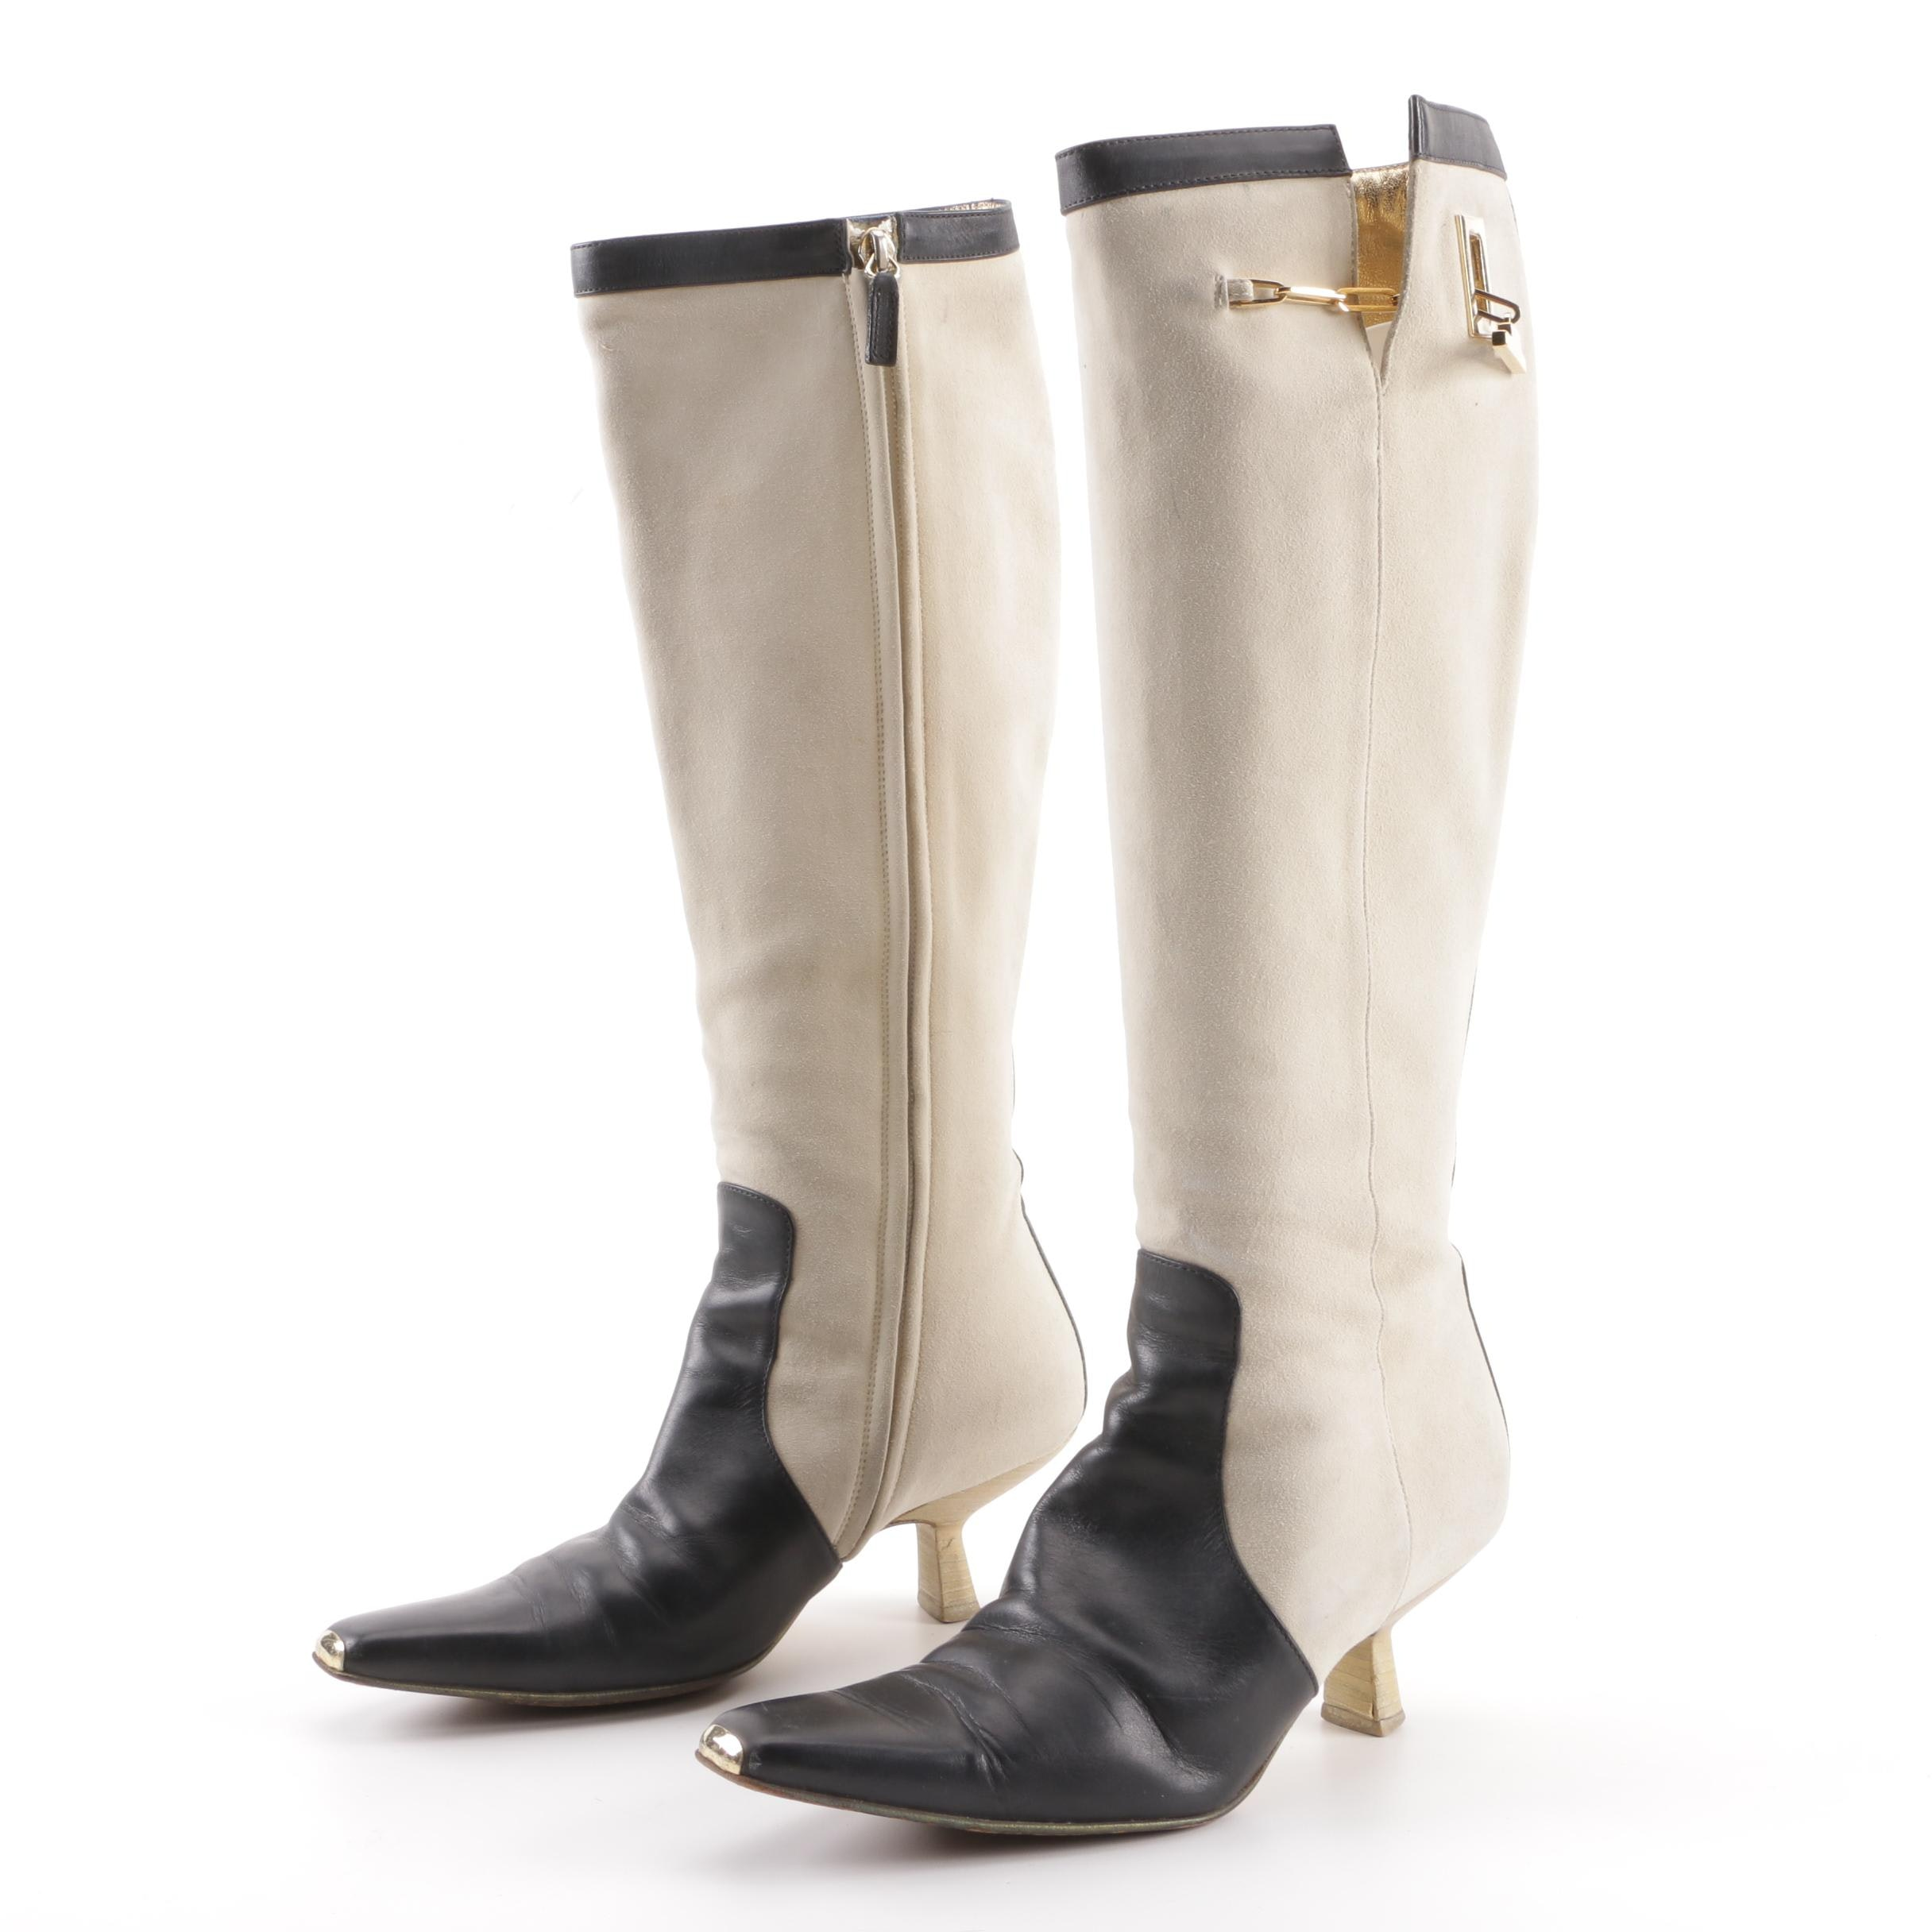 Gucci Cream Suede and Black Leather Color Block Boots